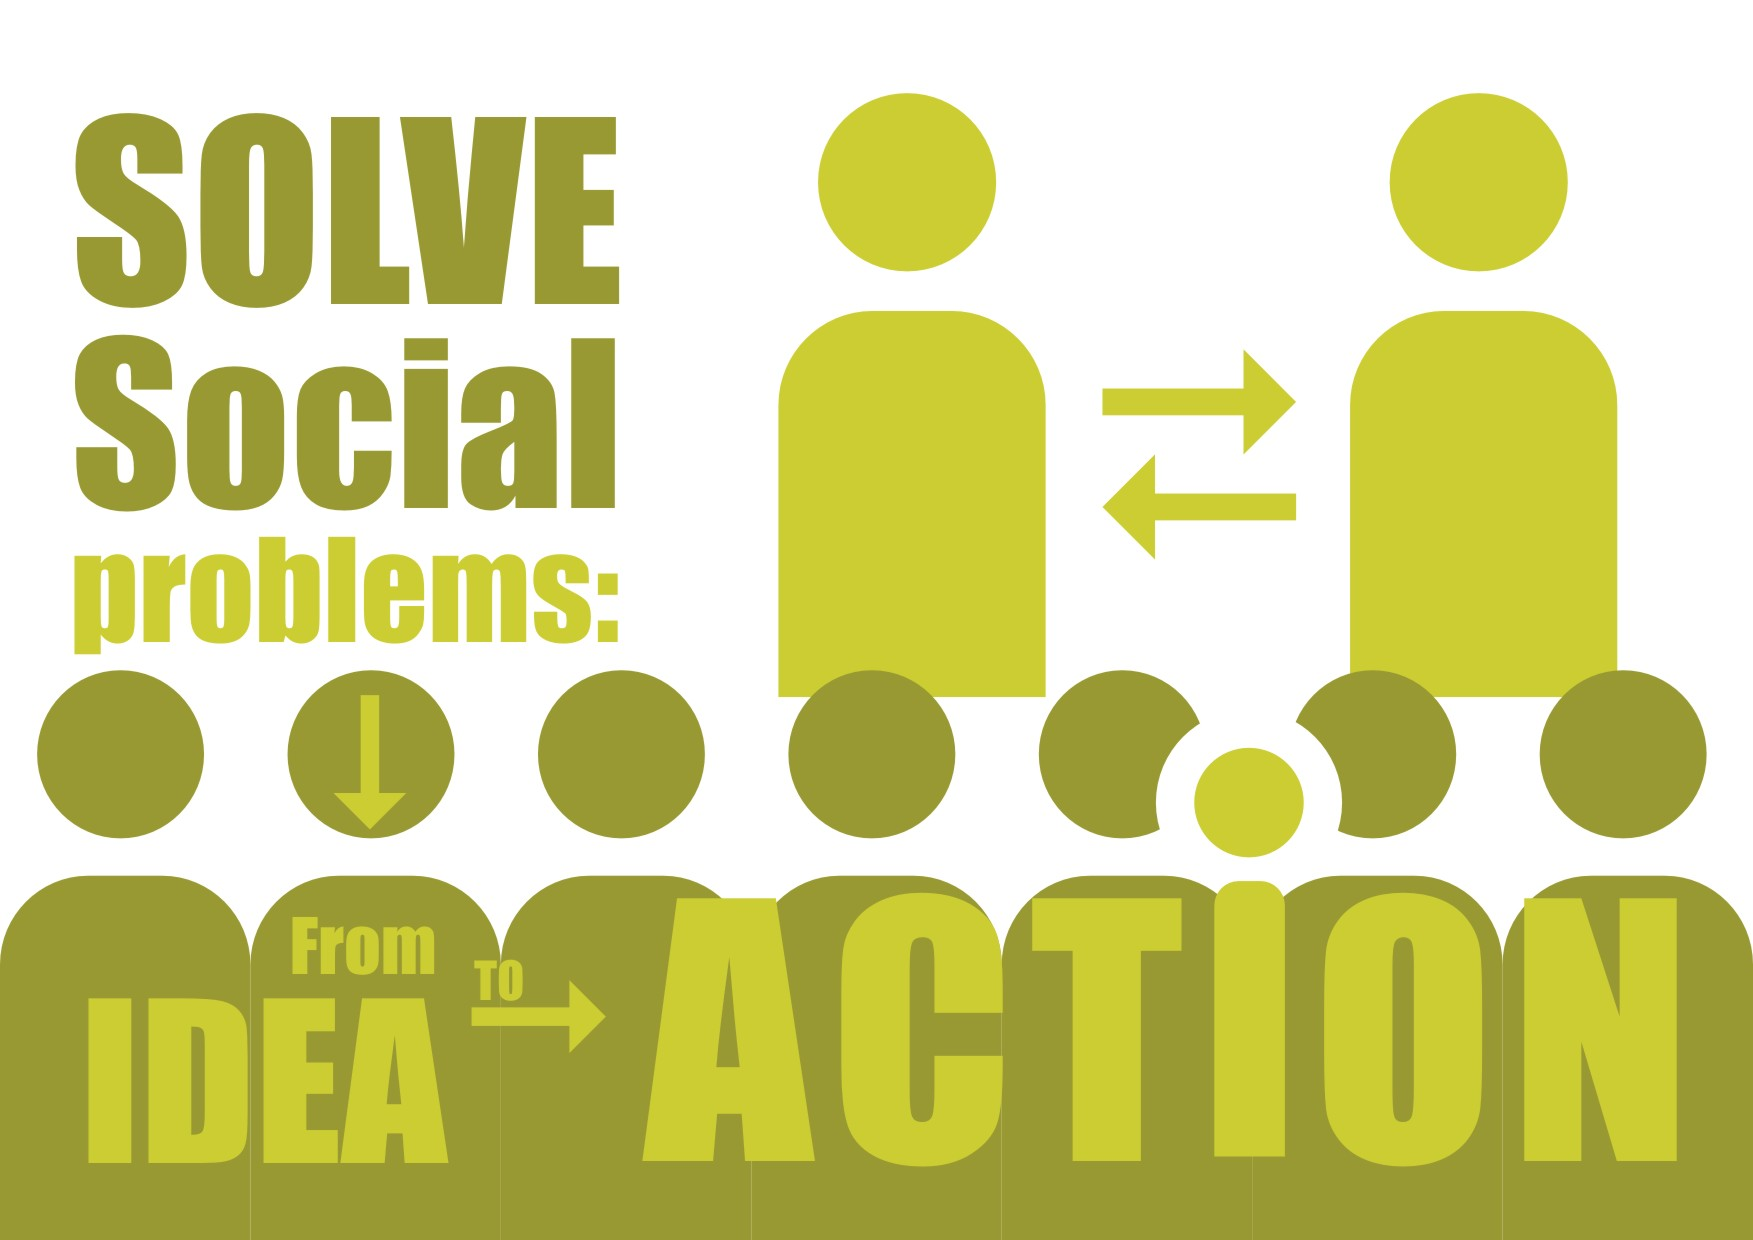 Solve social problems: From idea to action